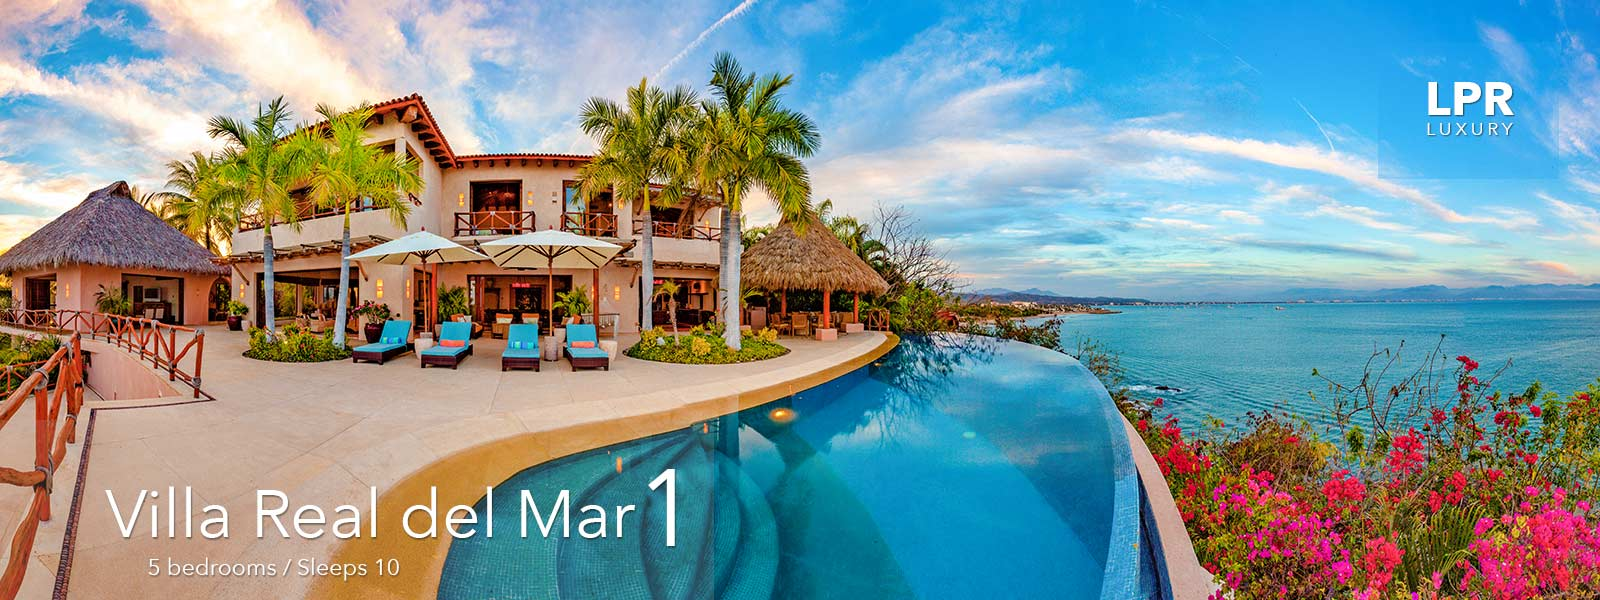 Villa Real del Mar 1 - Punta de Mita Luxury Real Estate and Vacation Rentals - Mexico